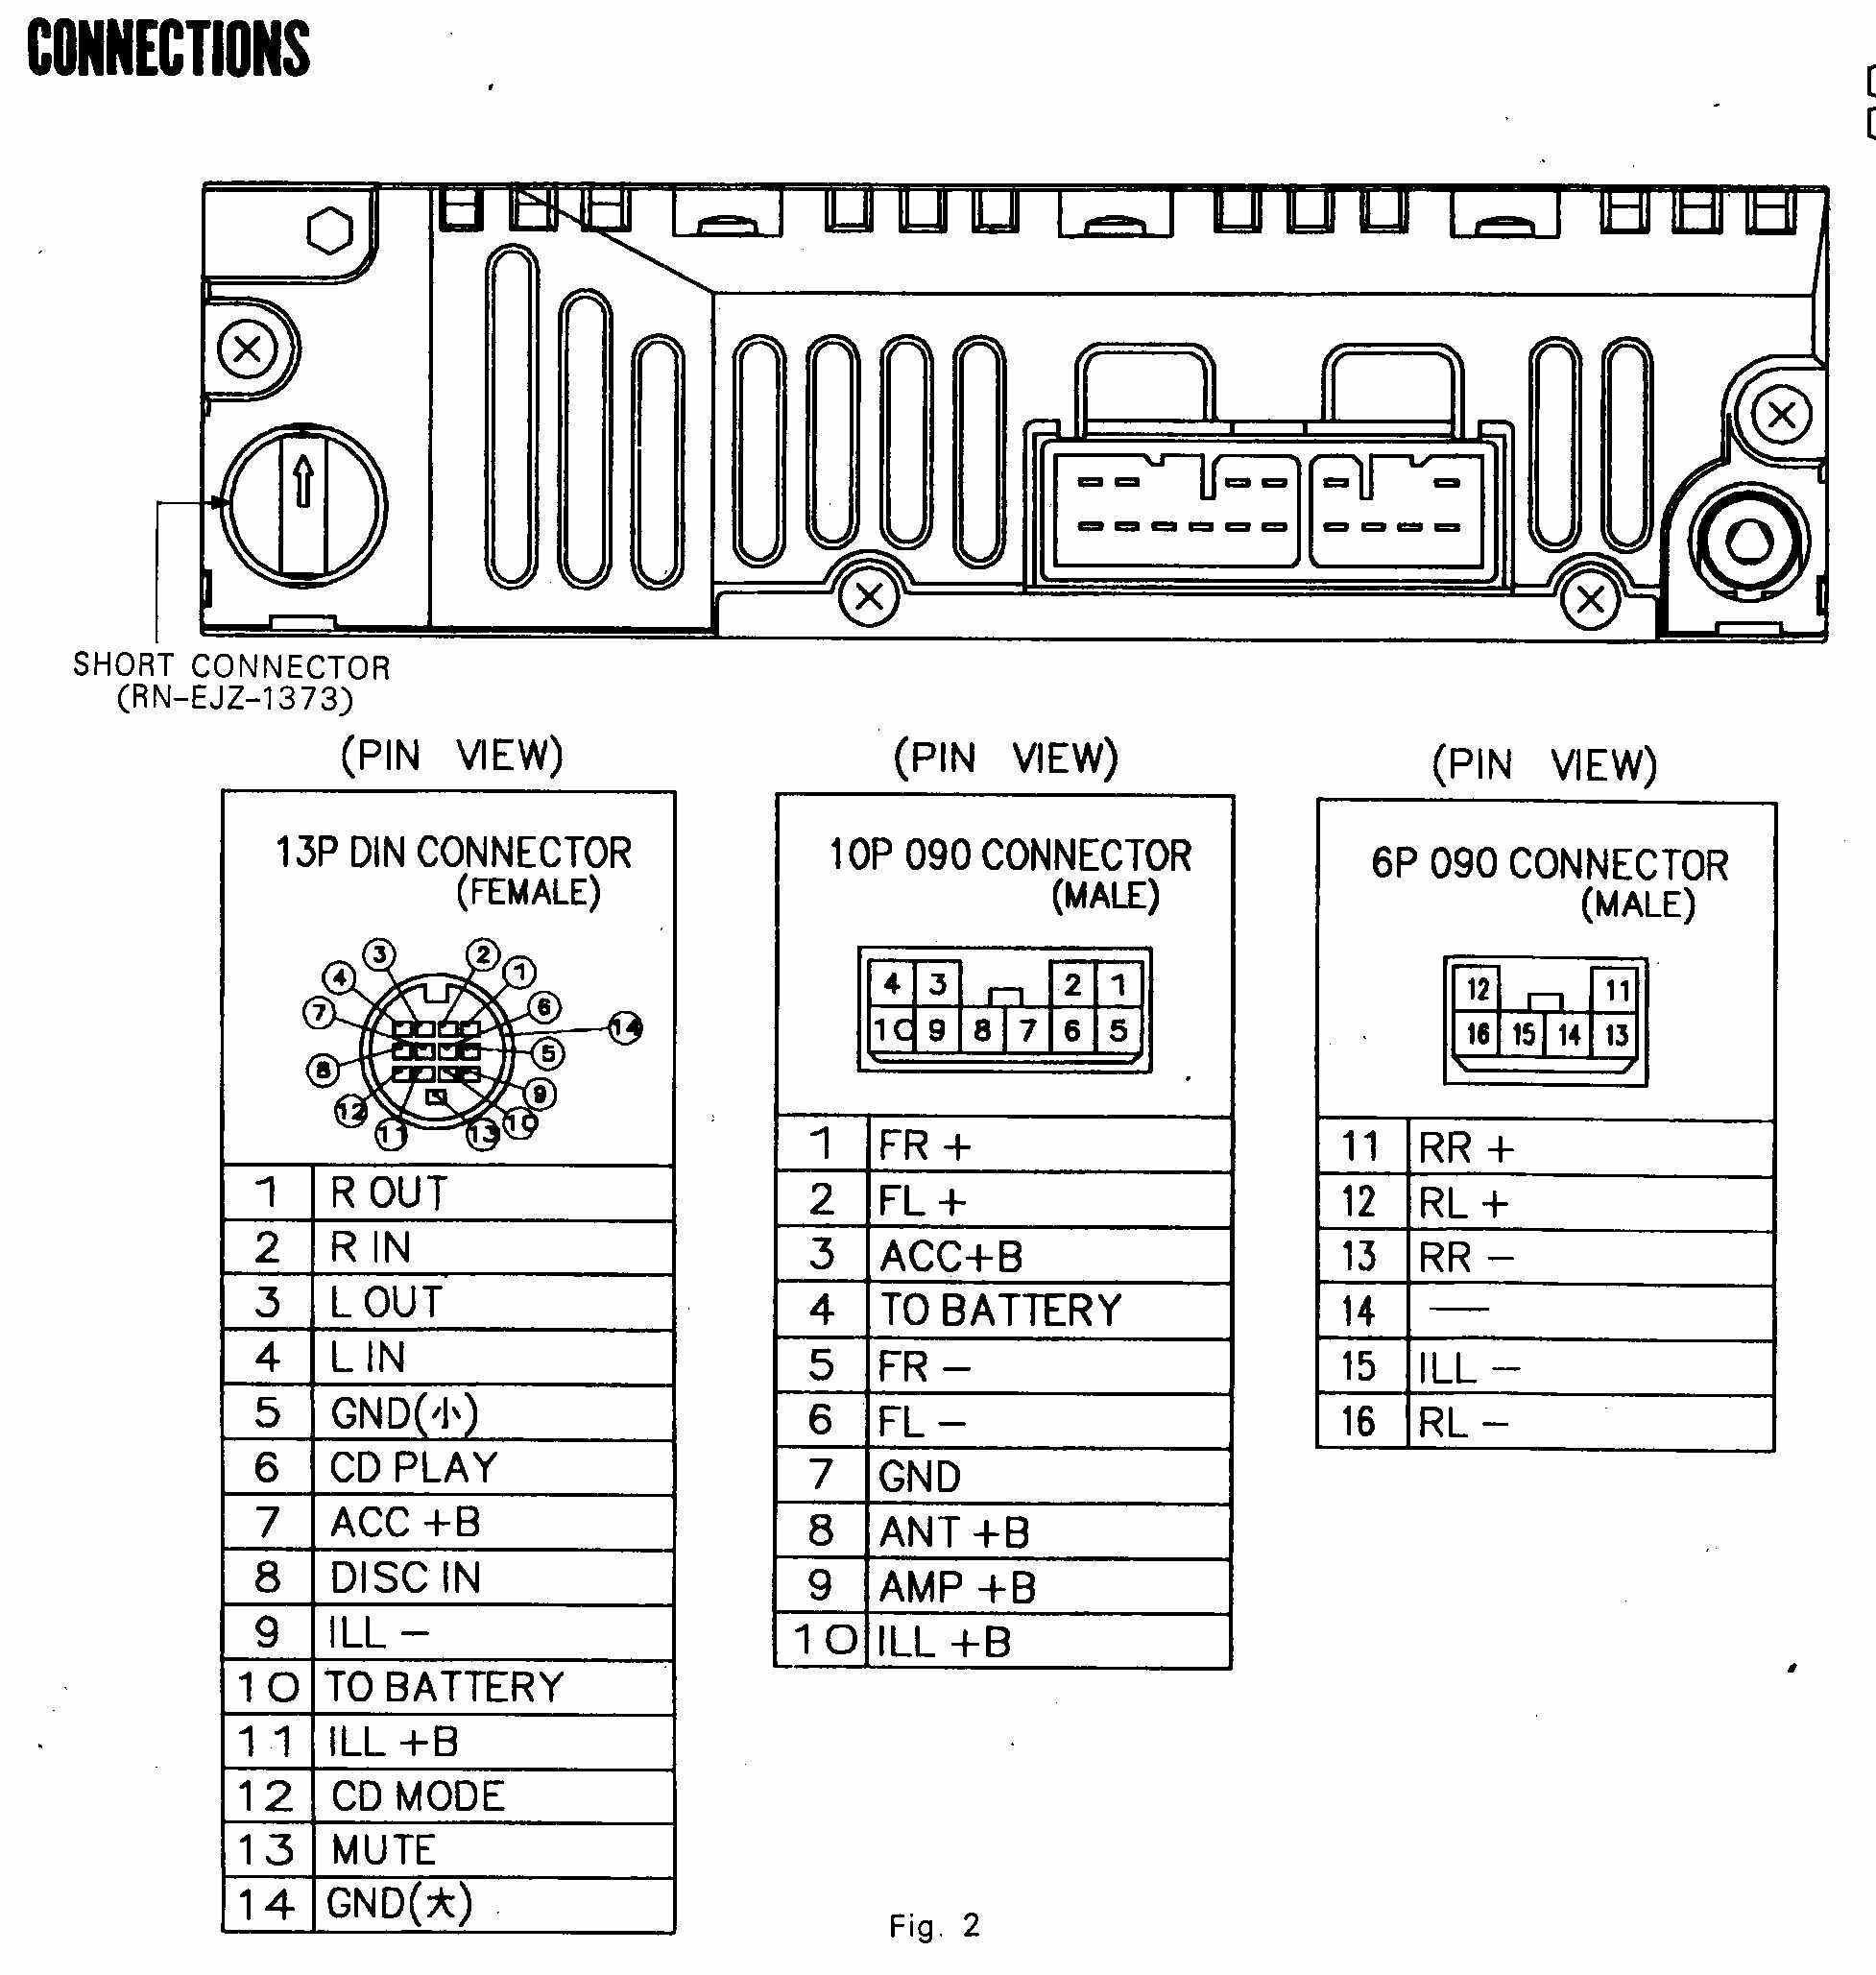 DDBEE 1985 Bmw E30 Wiring Diagrams | Wiring Resources